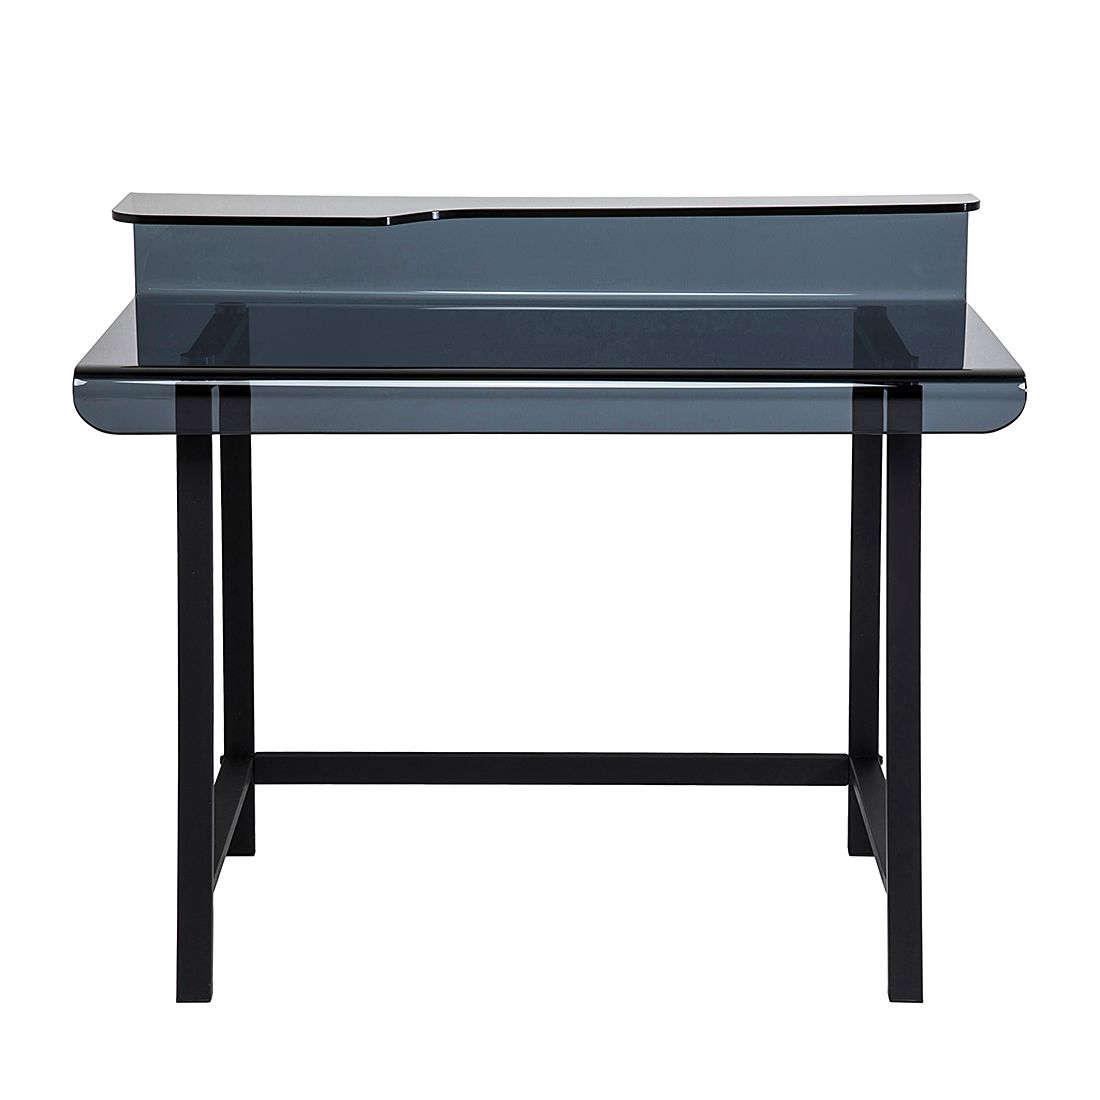 miliboo bureau design metal gris et noir comparer les. Black Bedroom Furniture Sets. Home Design Ideas